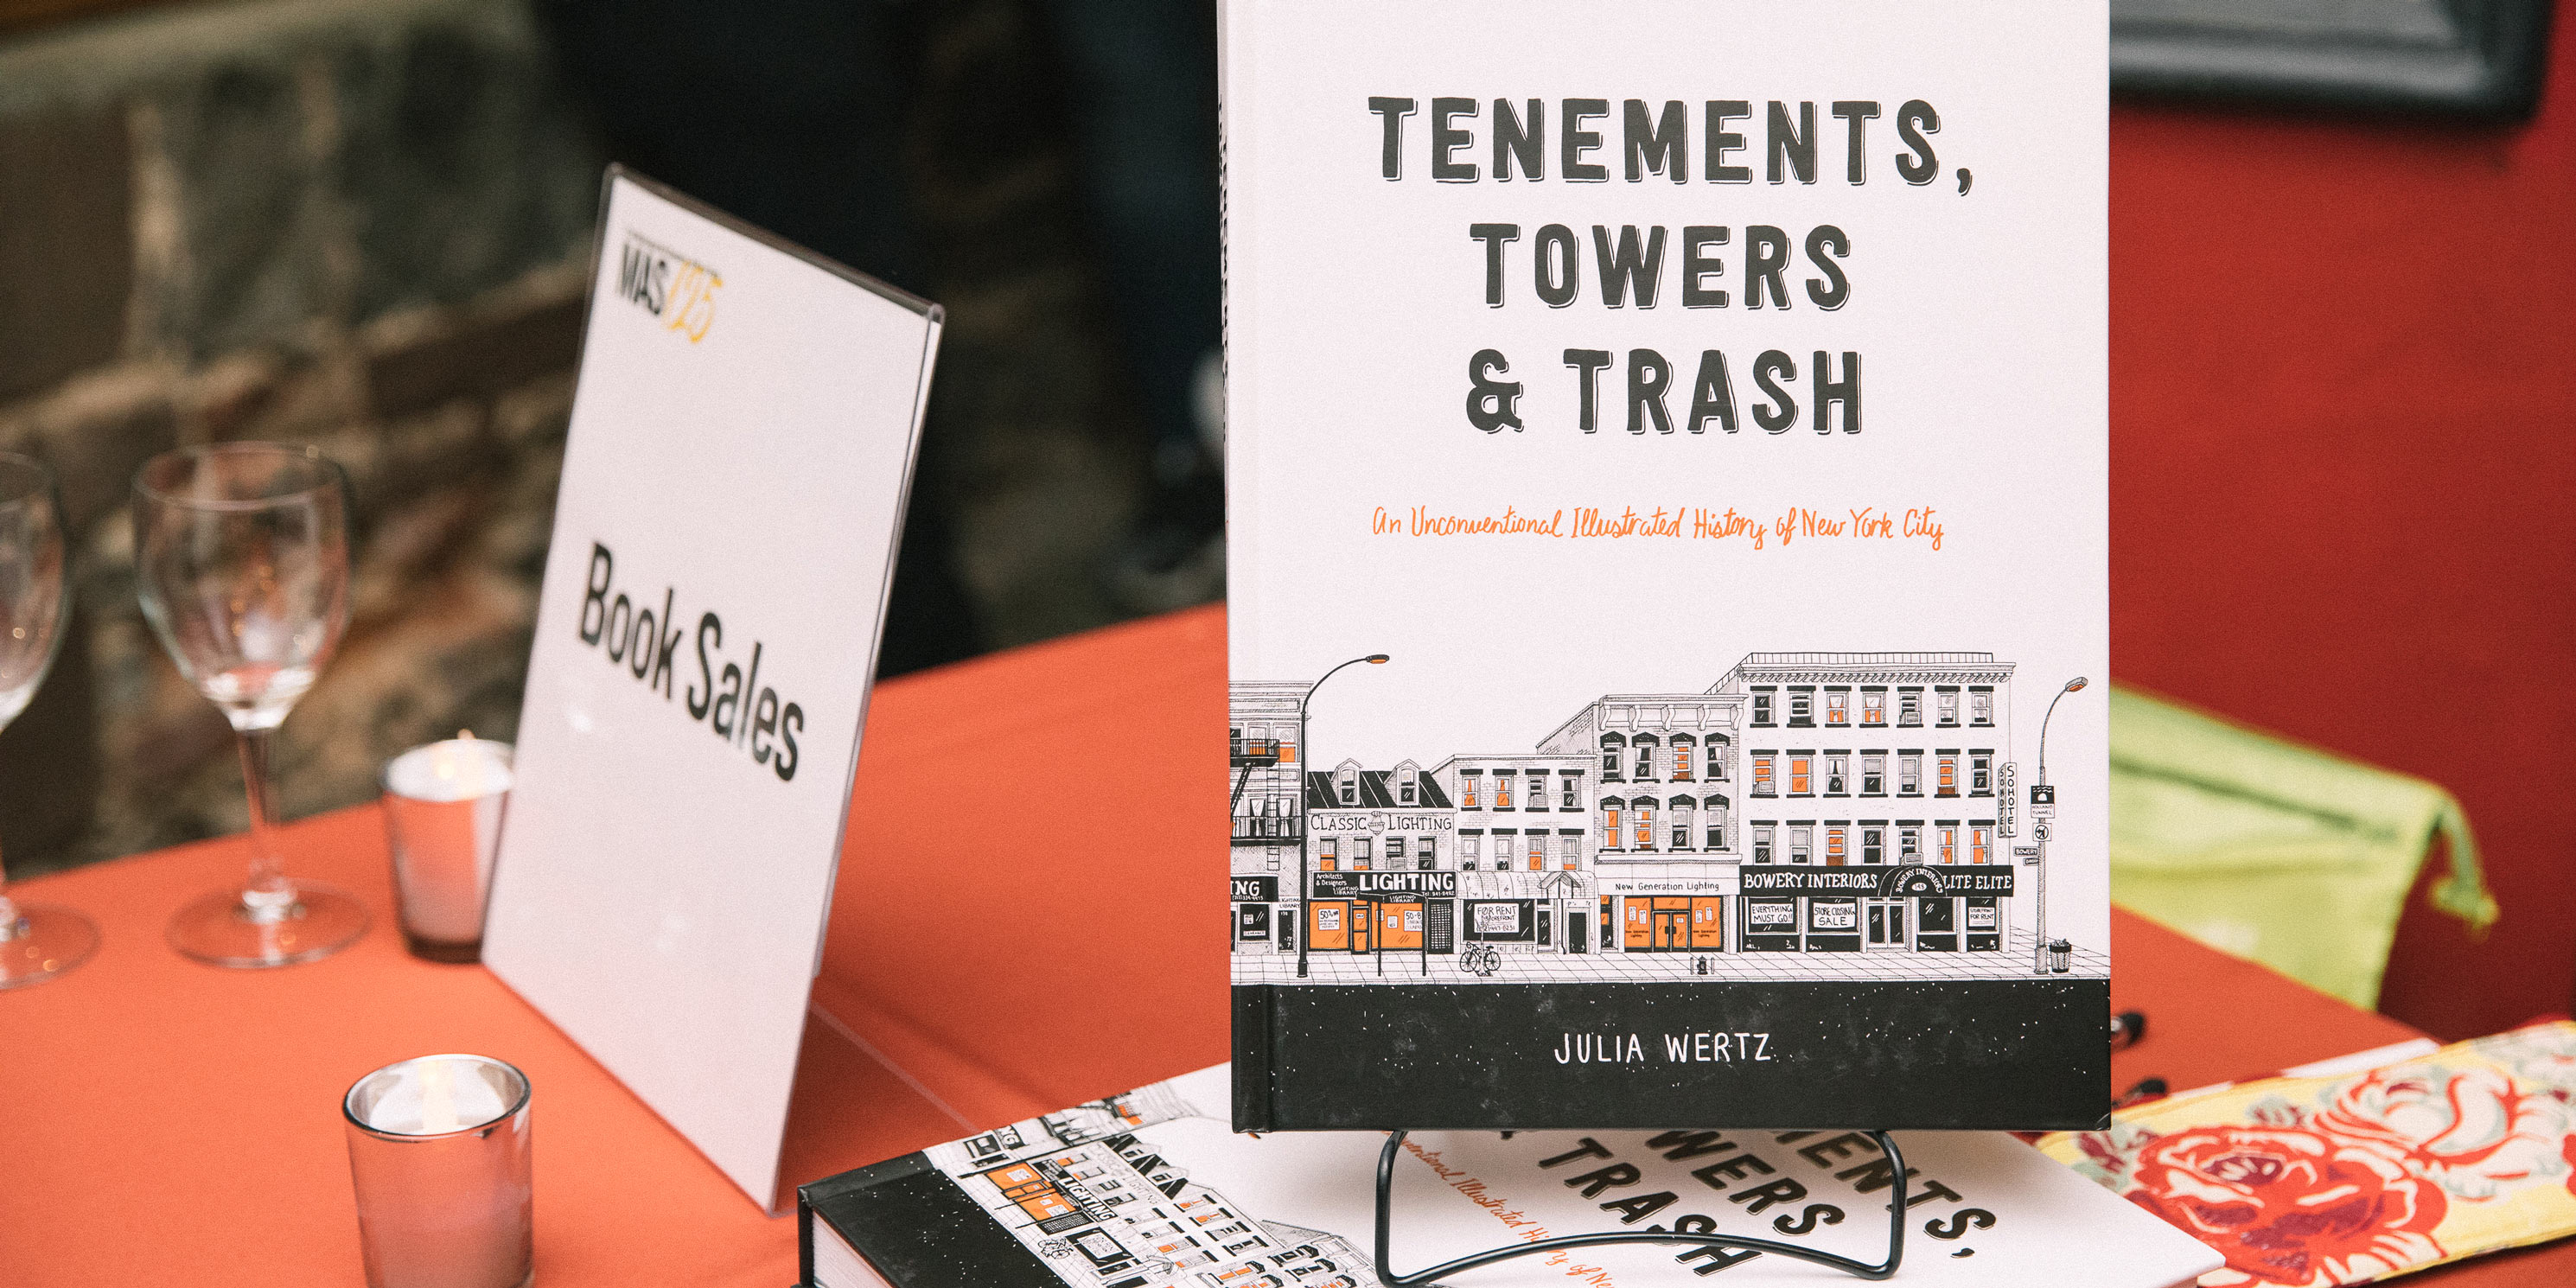 Tenements, Towers & Trash: An Unconventional Illustrated History of New York, by Julia Wertz displayed on table